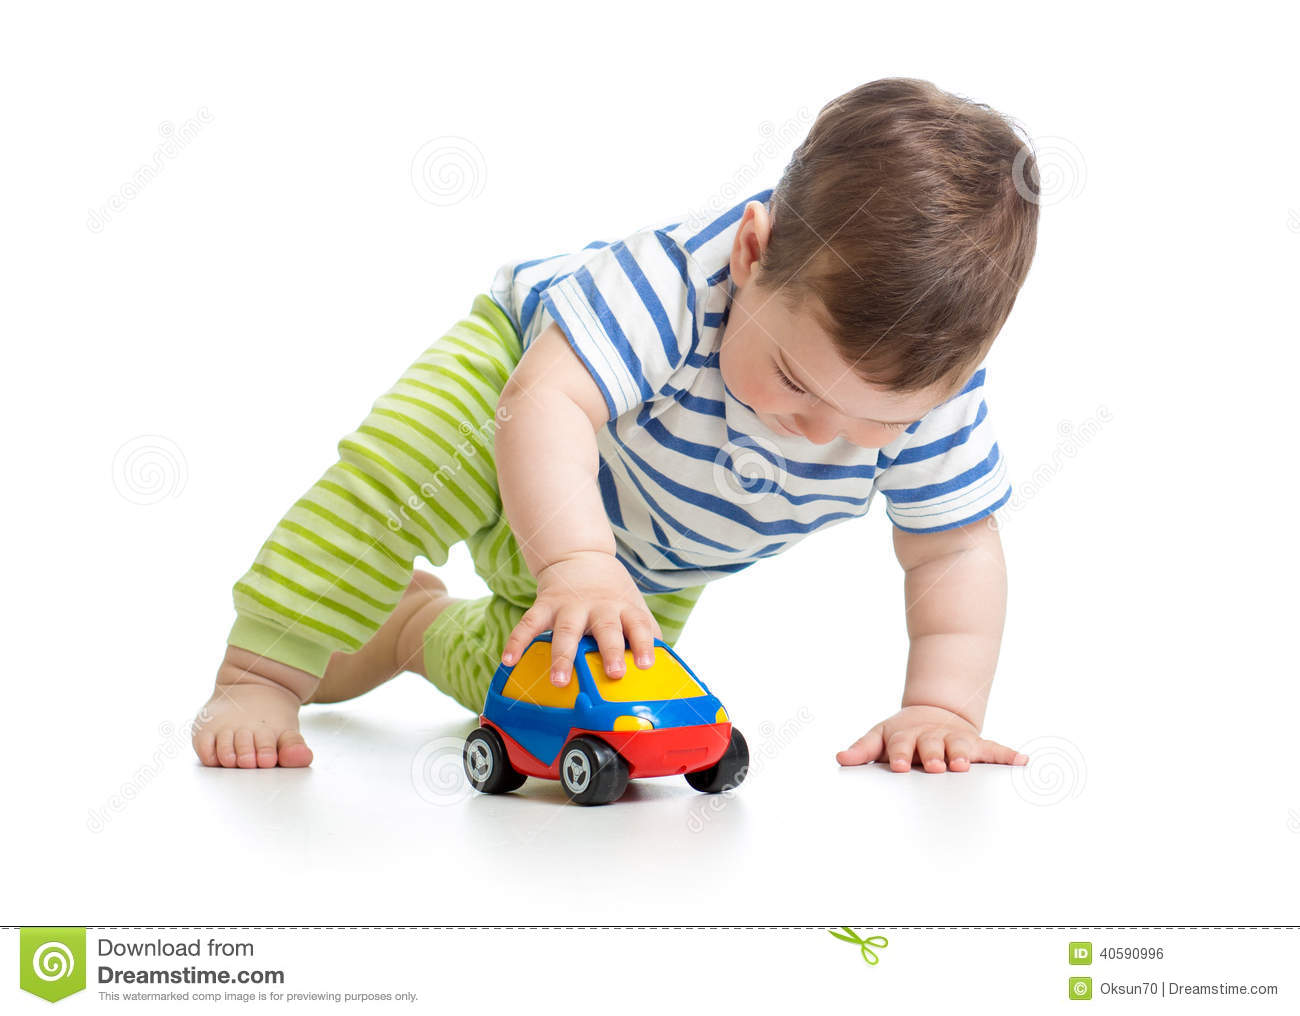 Baby Boy Toy Cars : Baby boy toddler playing with toy car stock photo image